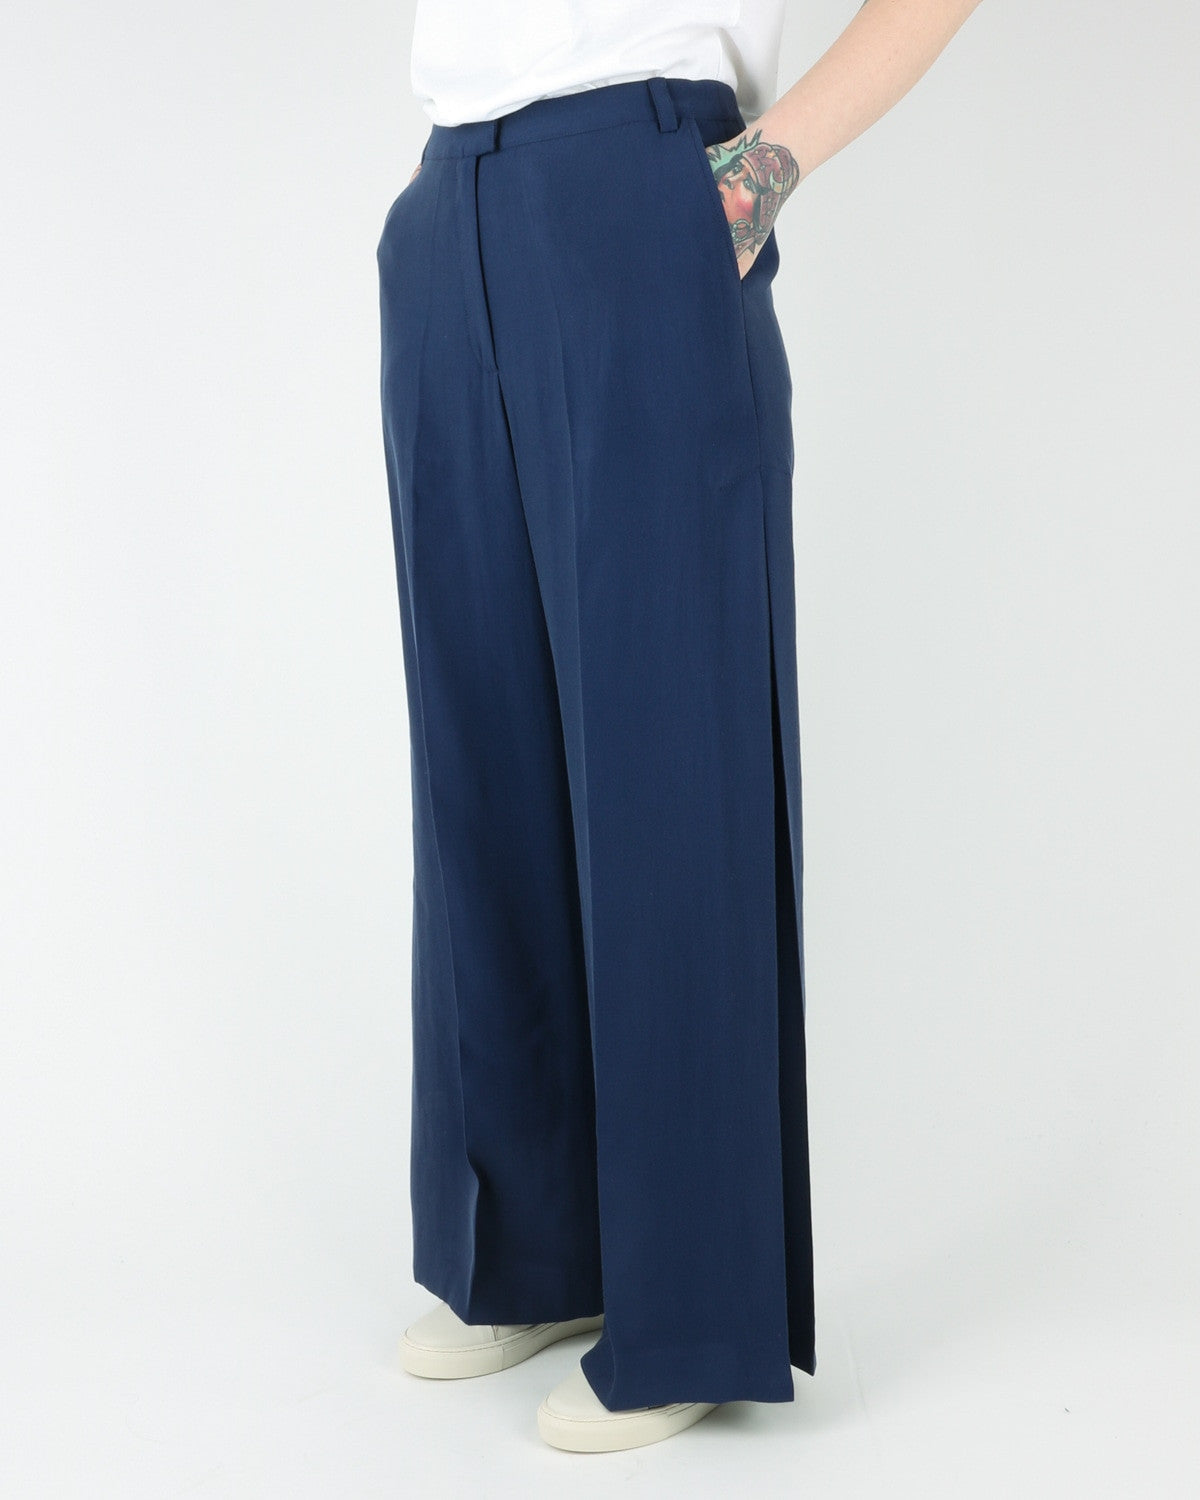 libertine libertine_day trousers_hq blue_view_2_3